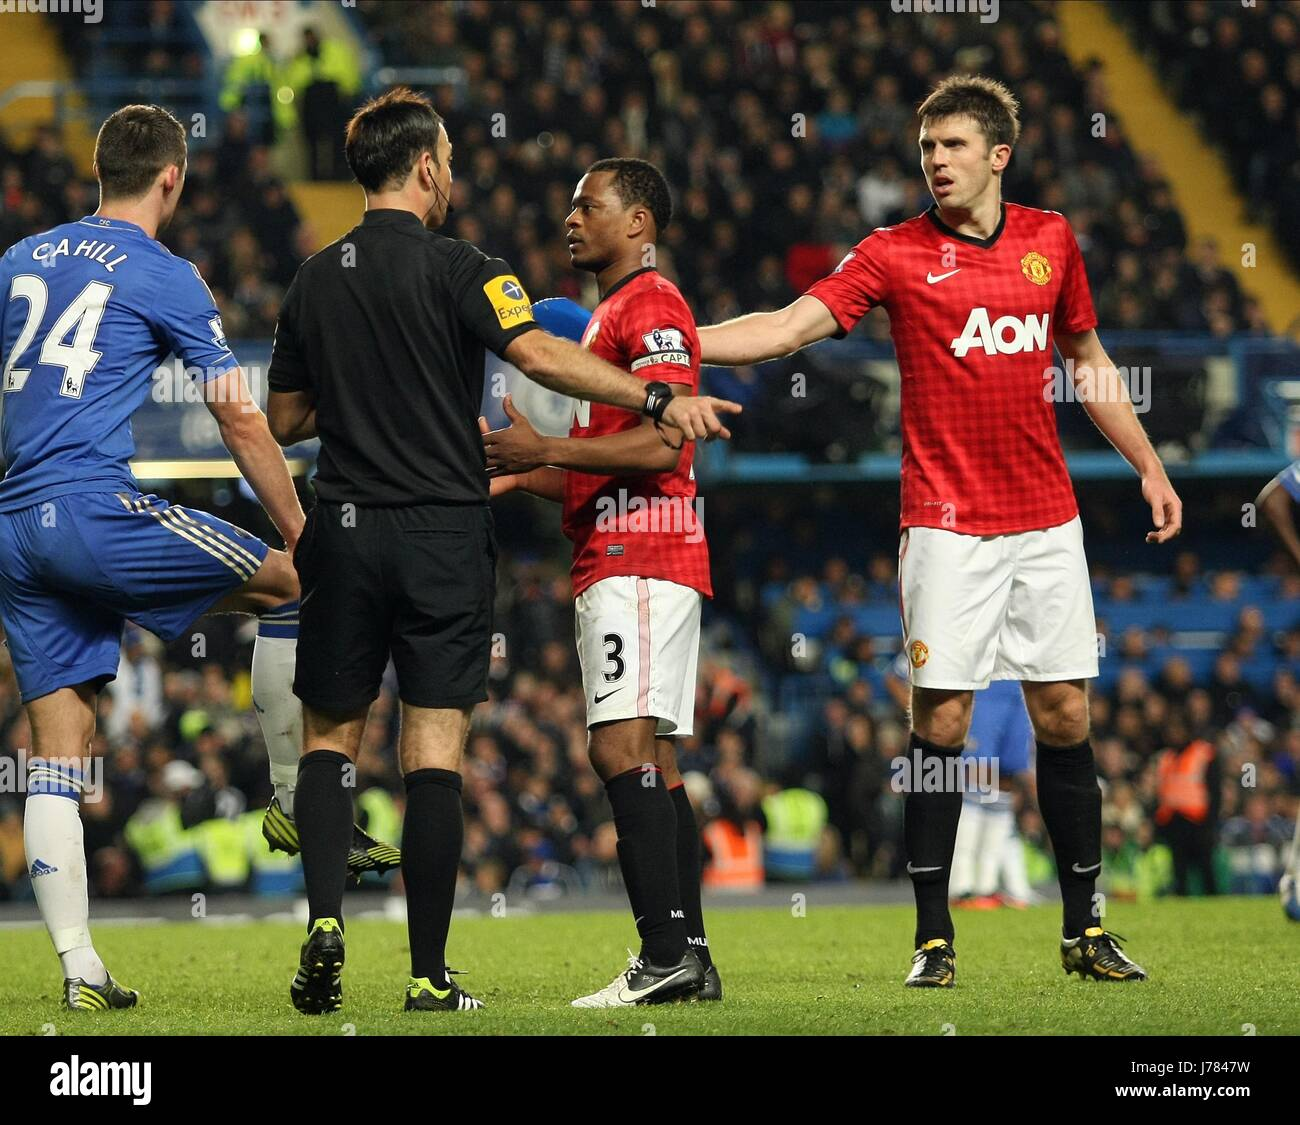 ec1be9a0da7 MICHAEL CARRICK SHOWS SEAT BAC CHELSEA V MANCHESTER UNITED LONDON ENGLAND  UK 28 October 2012 -